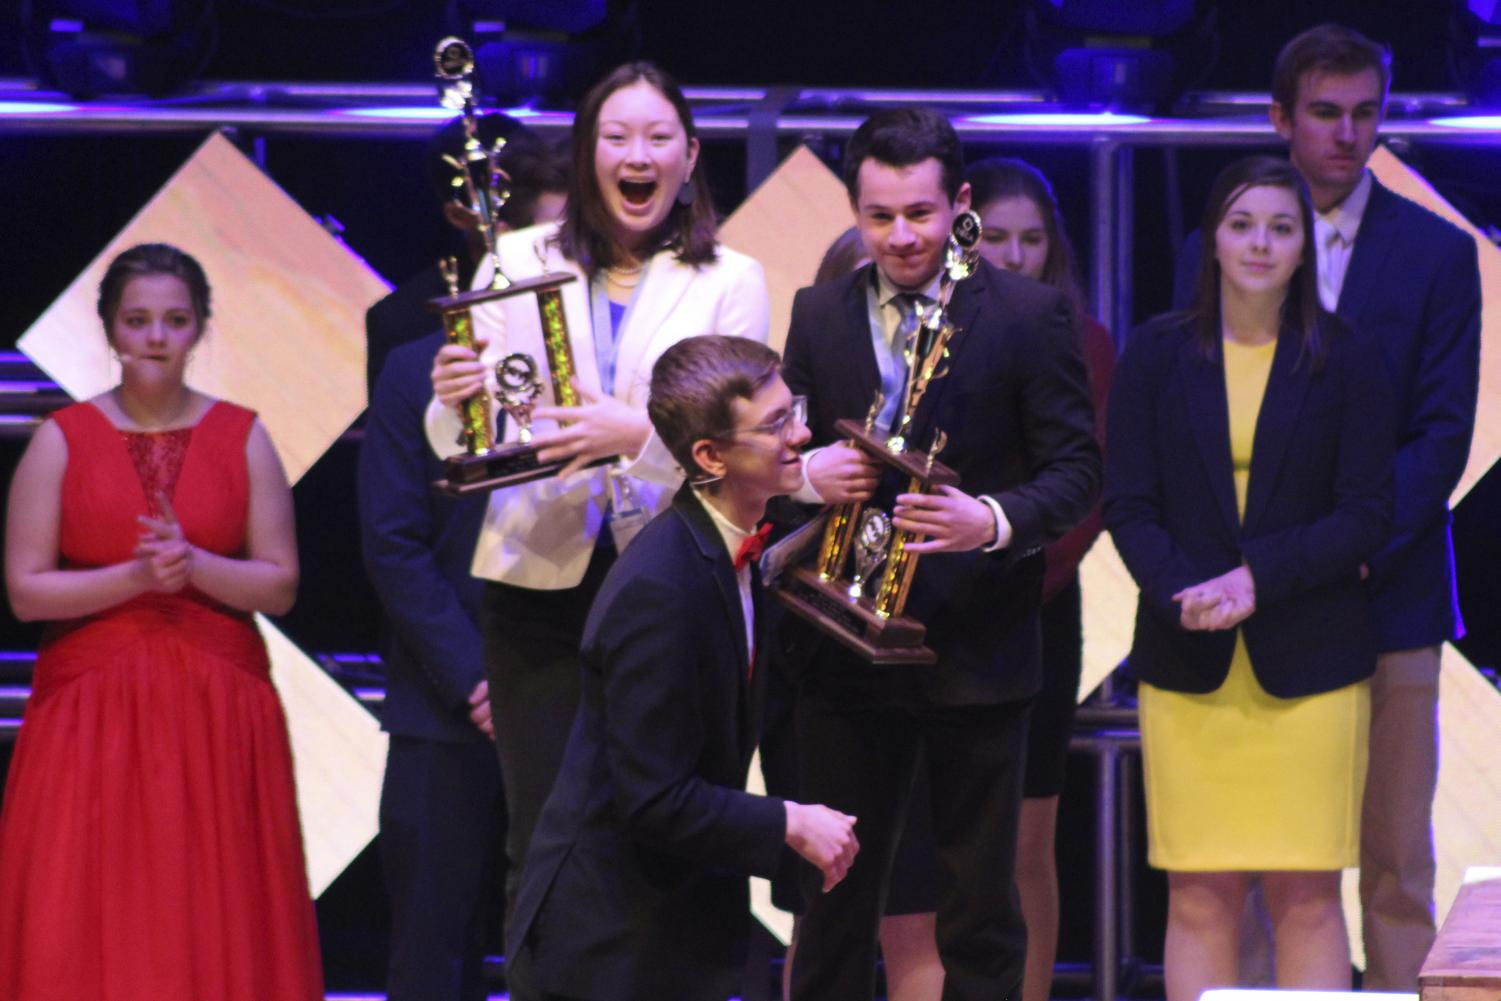 Sophmores Daniel Goldenberg and Emma Amon step up to receive their third place trophy for their team decision-making event at the 2019 DECA State competition.